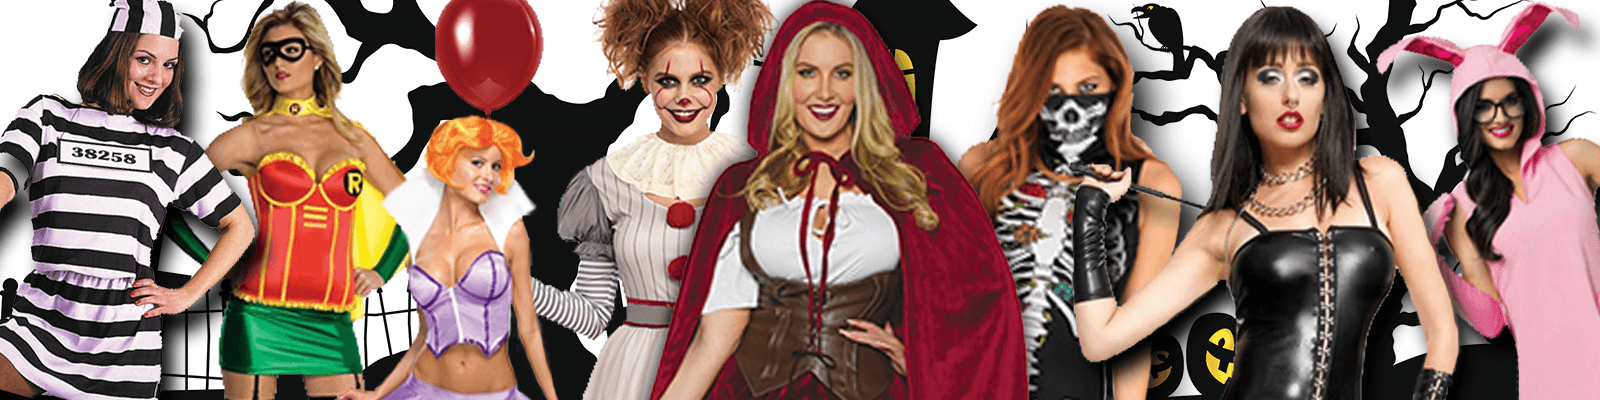 2019 S Best Women S Costumes For Halloween And Other Occasions